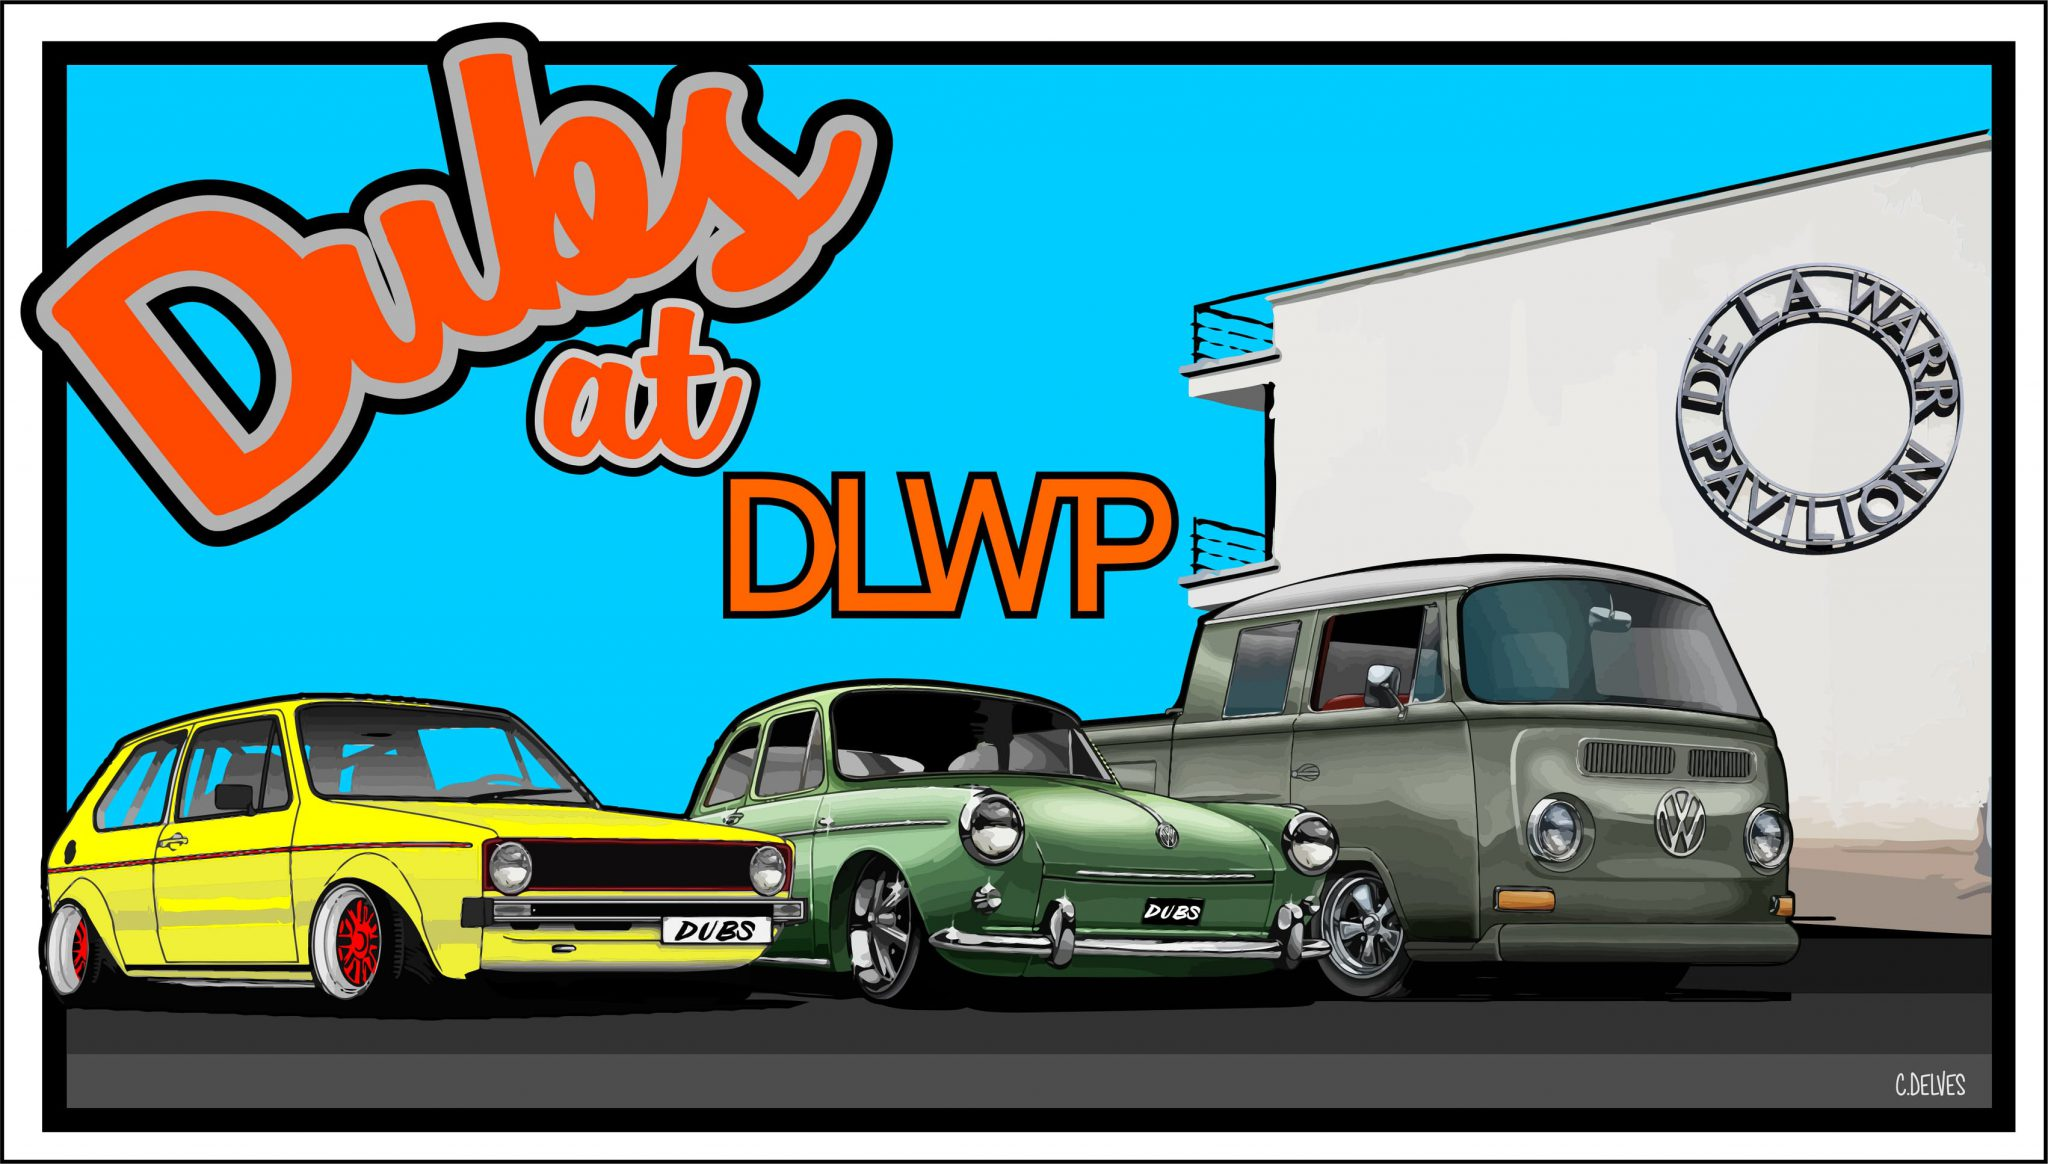 Dubs at DLWP vw festival